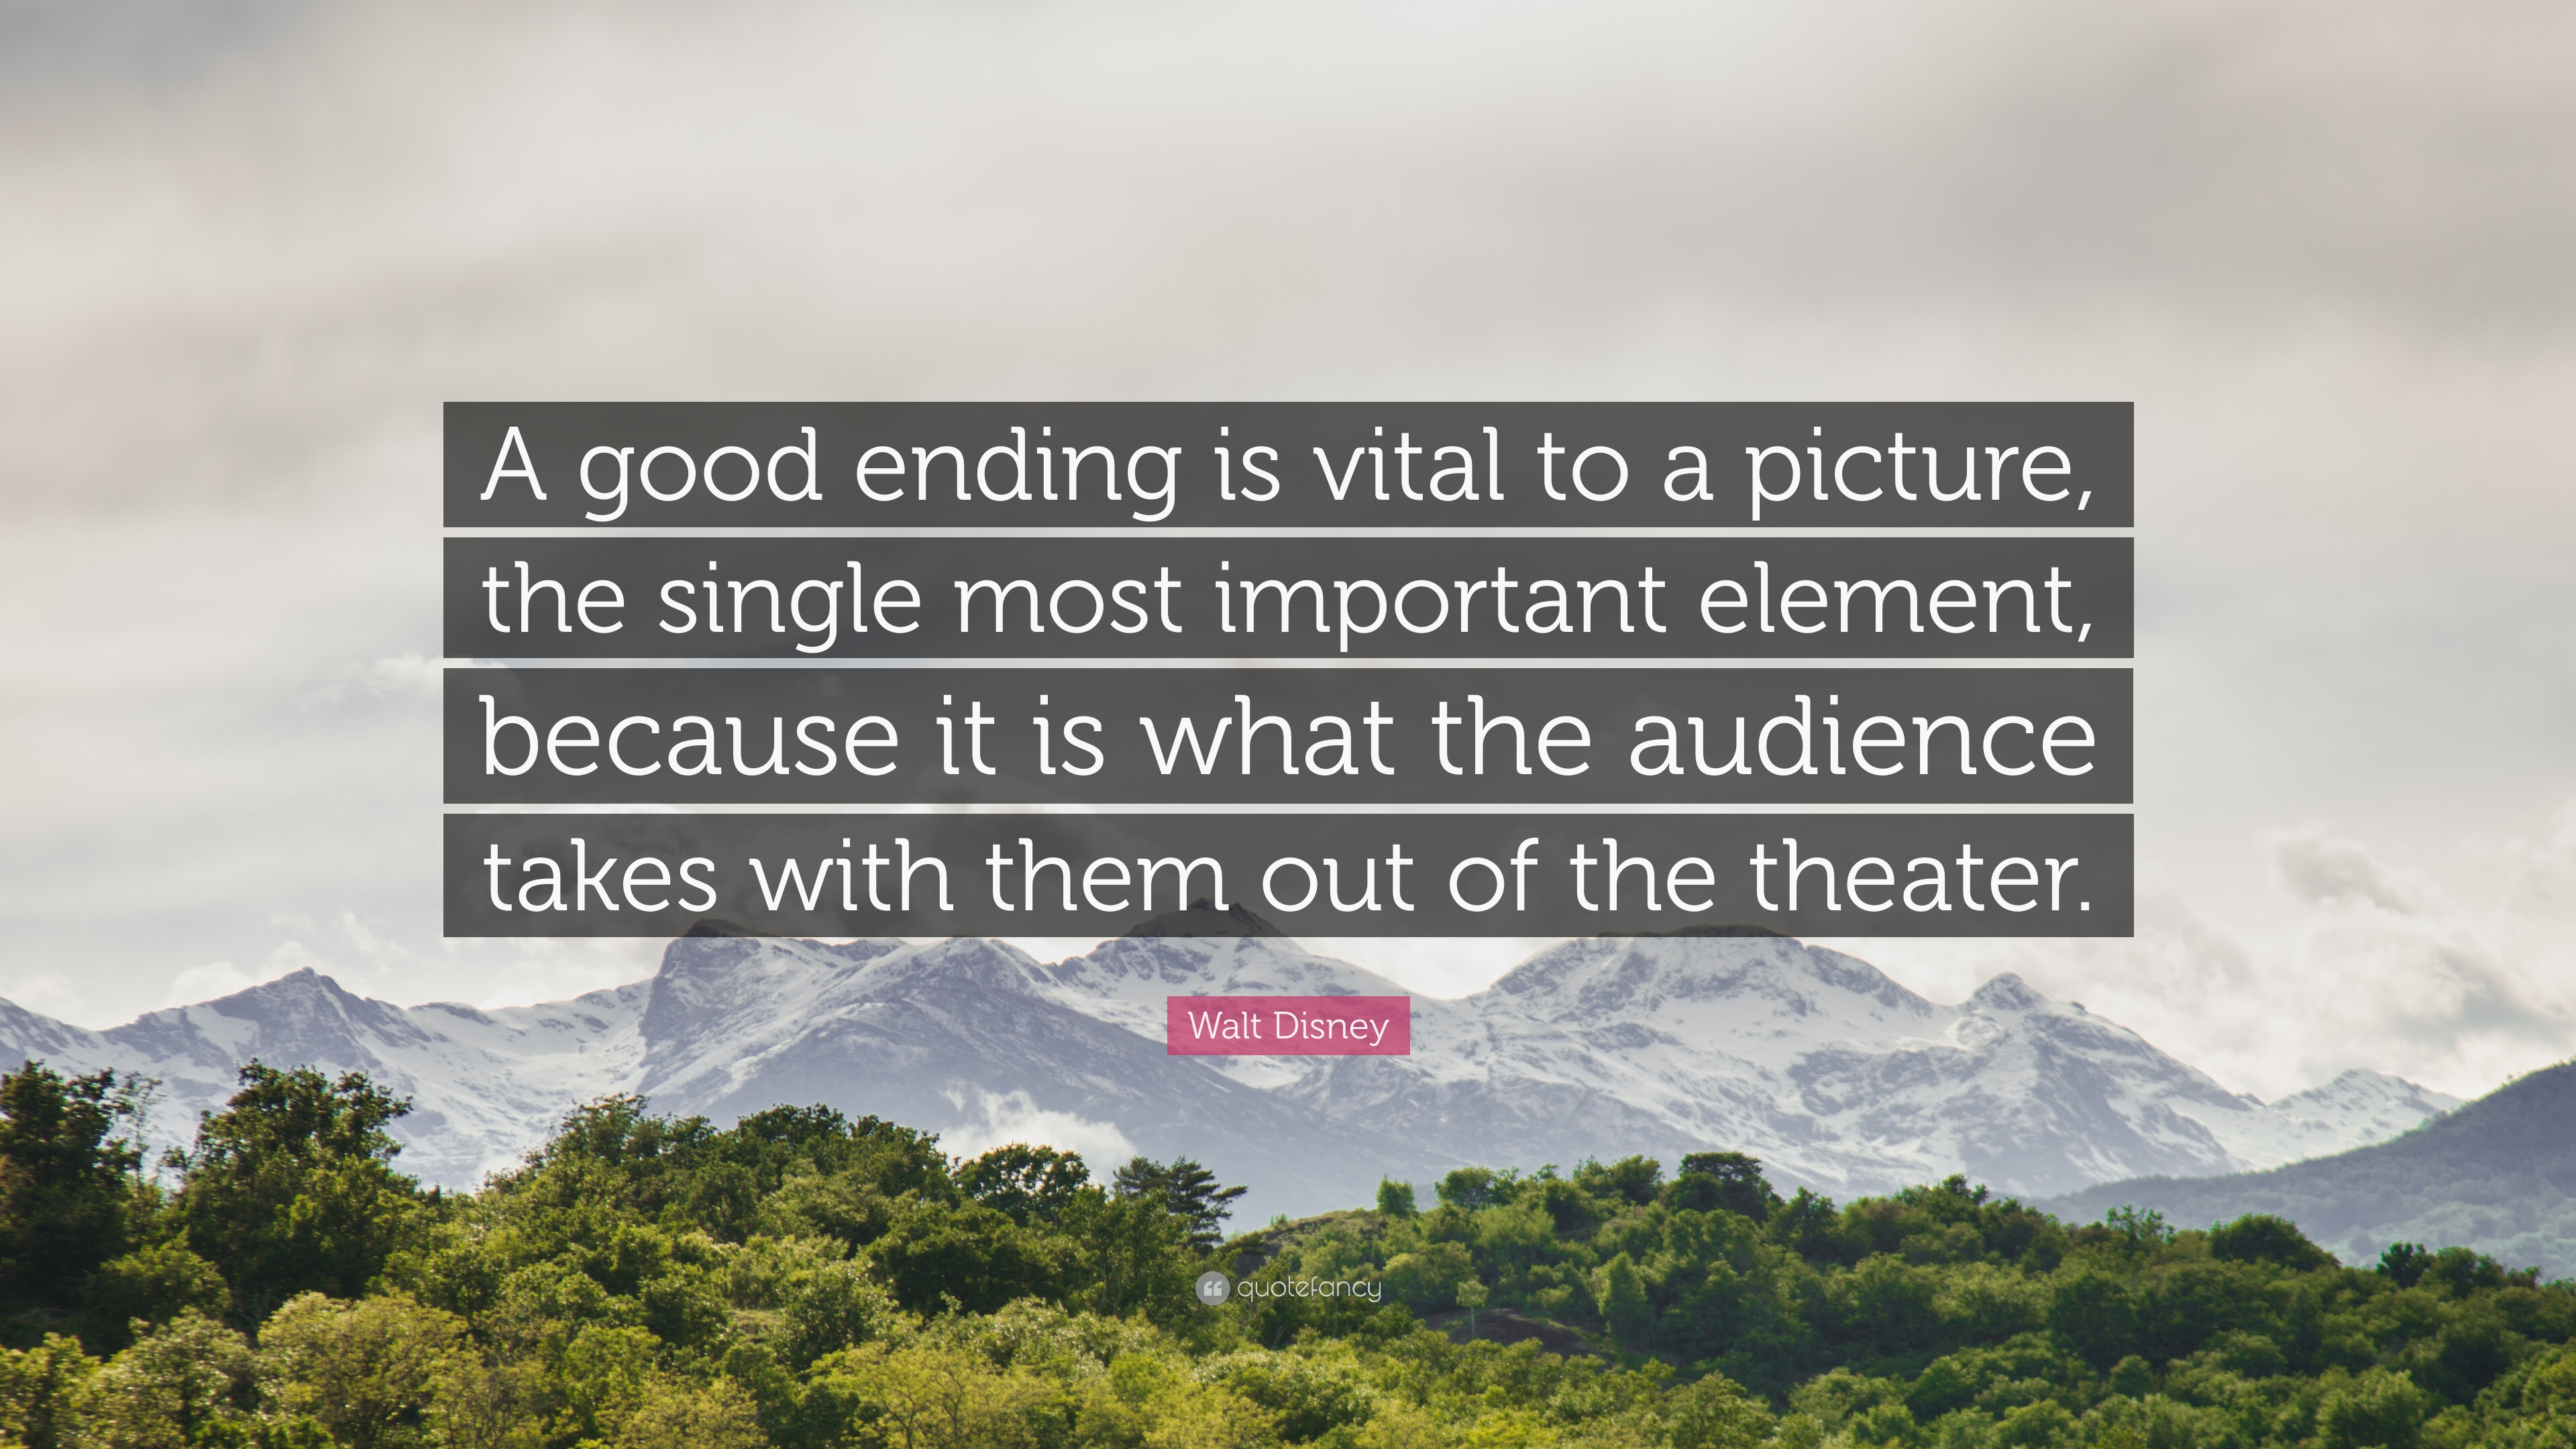 Walt Disney Quote: €�a Good Ending Is Vital To A Picture, The Single